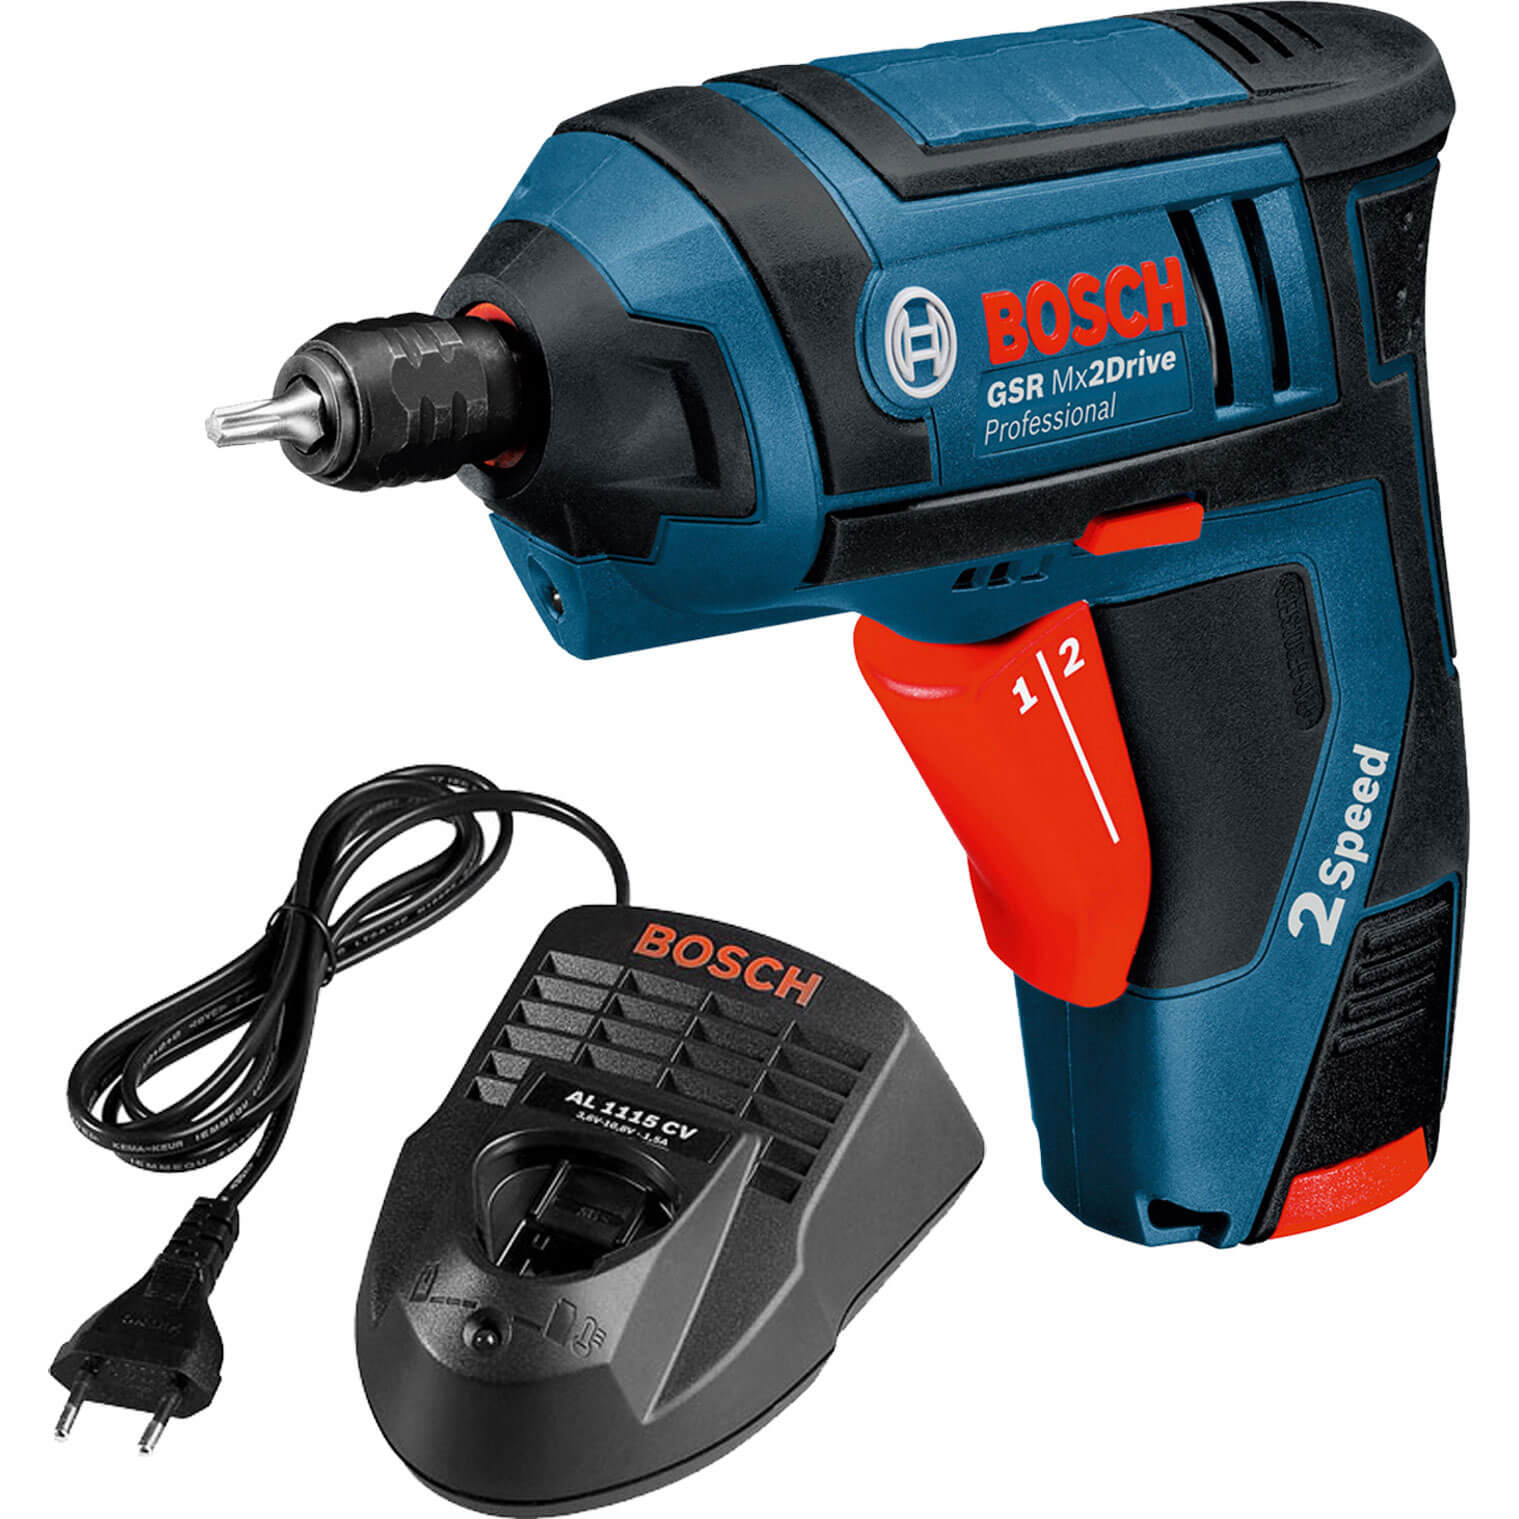 bosch gsr 3 6 v li mx2drive cordless screwdriver. Black Bedroom Furniture Sets. Home Design Ideas